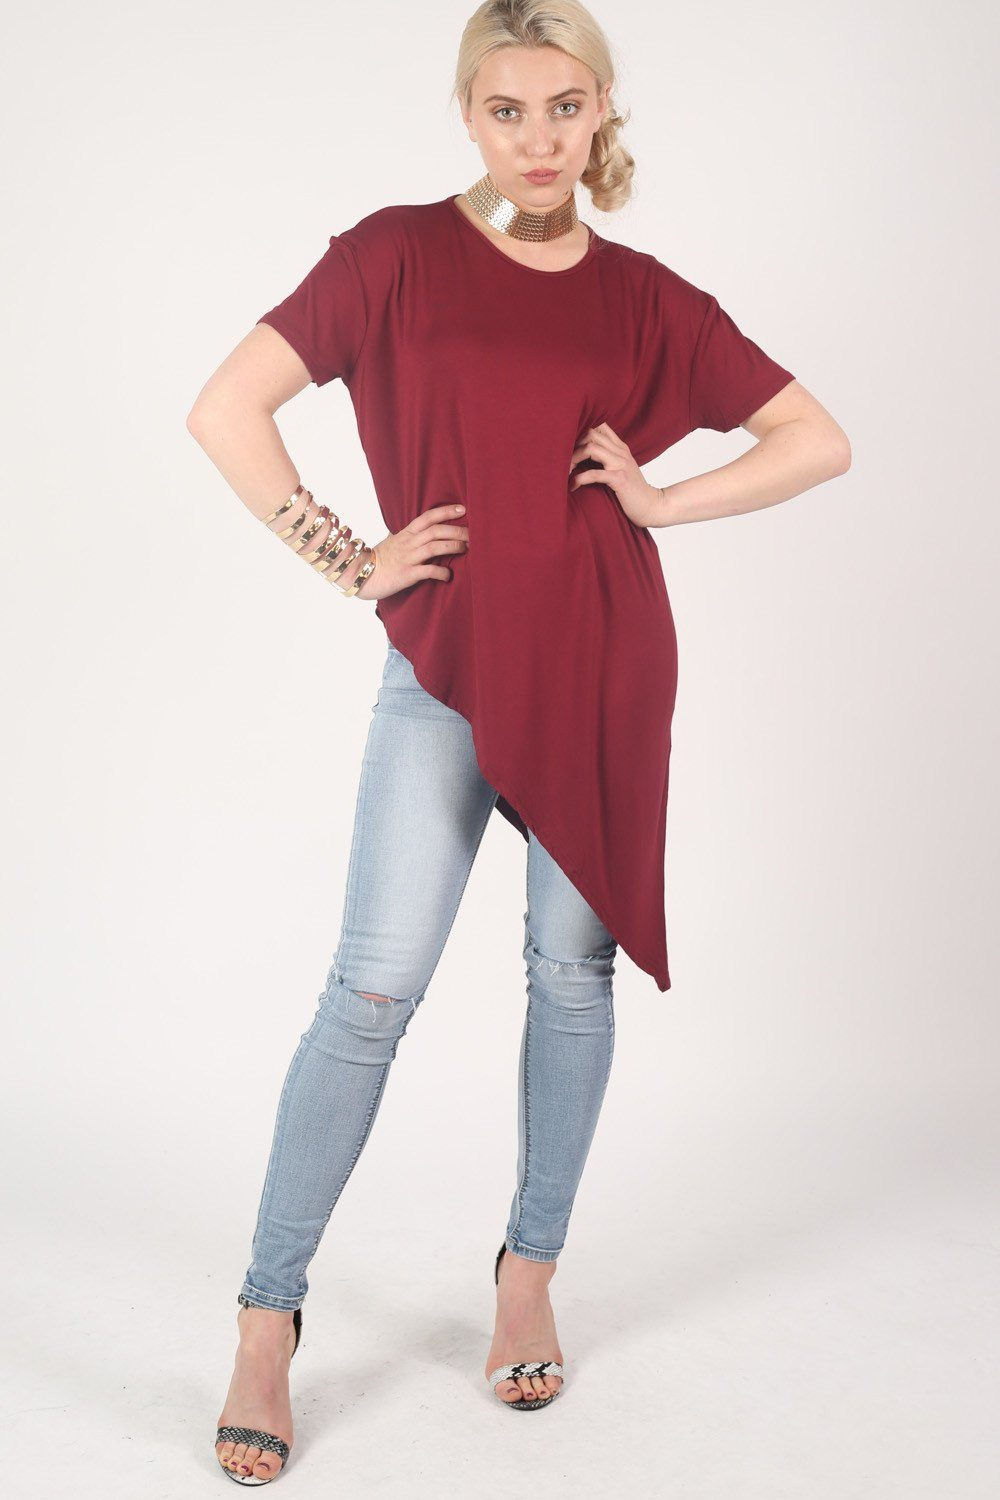 Cap Sleeve Asymmetric Top in Burgundy Red 0